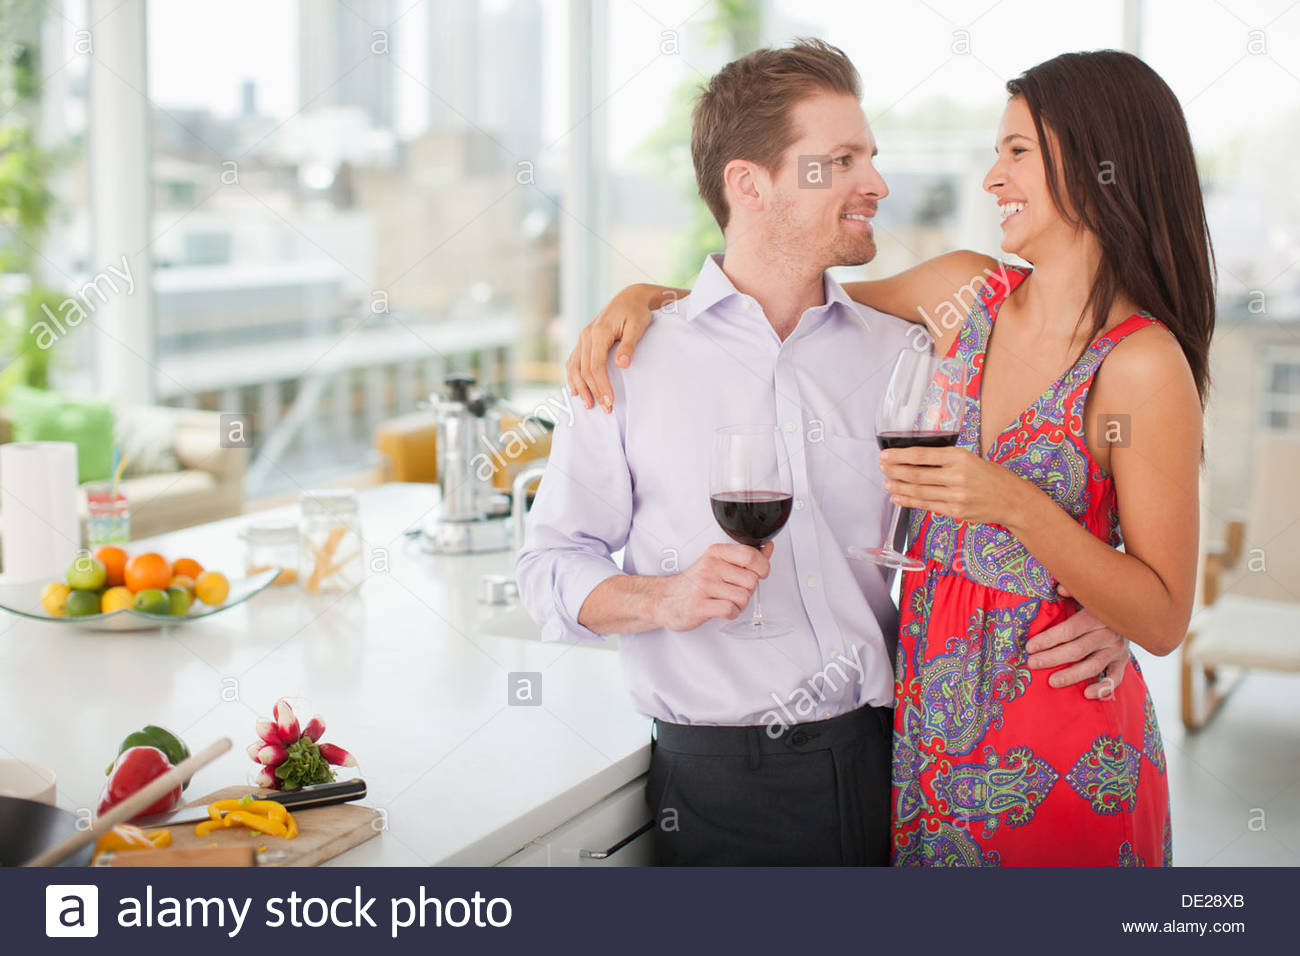 Couple drinking red wine in kitchen - Stock Image